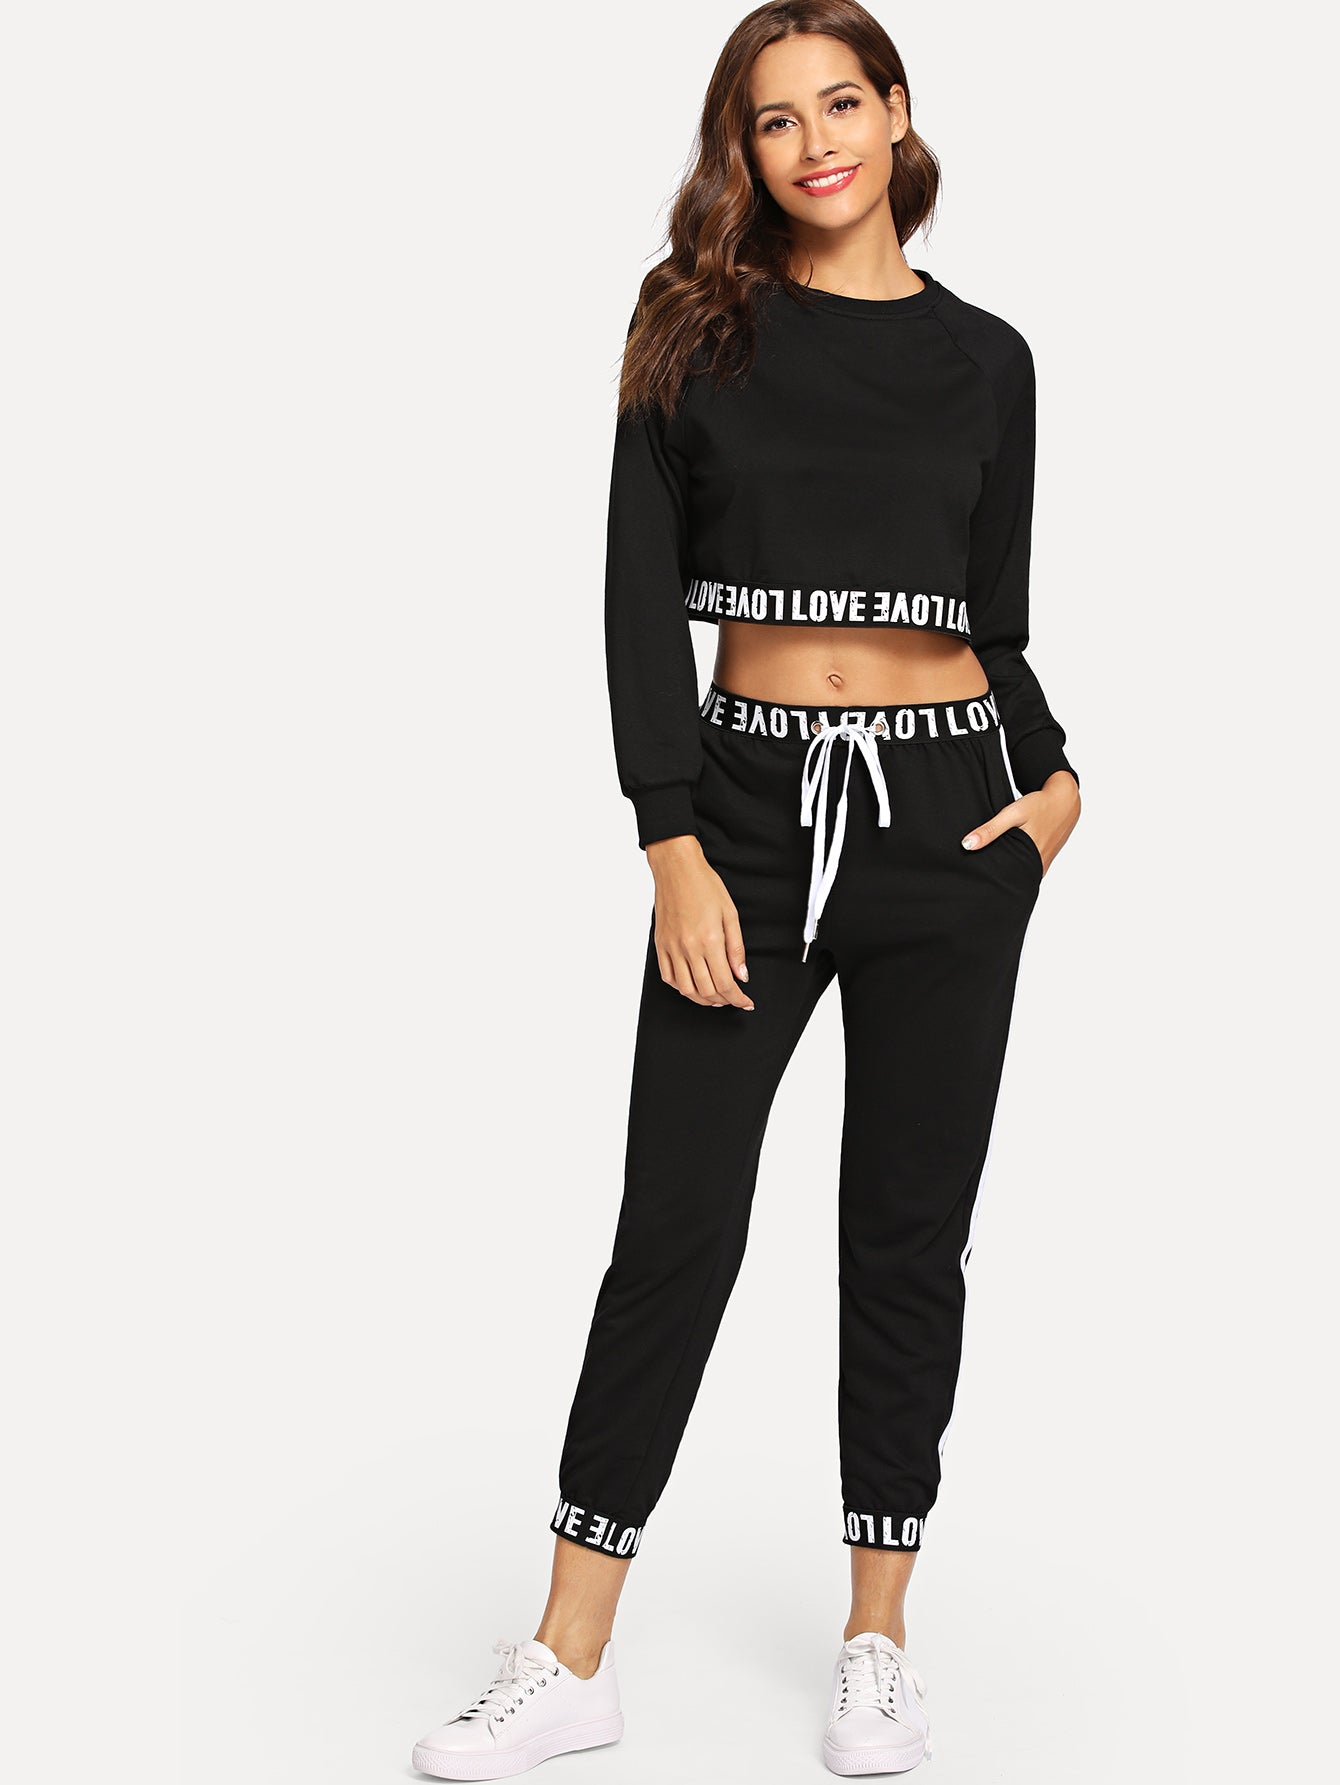 Letter Print Crop Top With Drawstring Pants-Sunshine's Boutique & Gifts